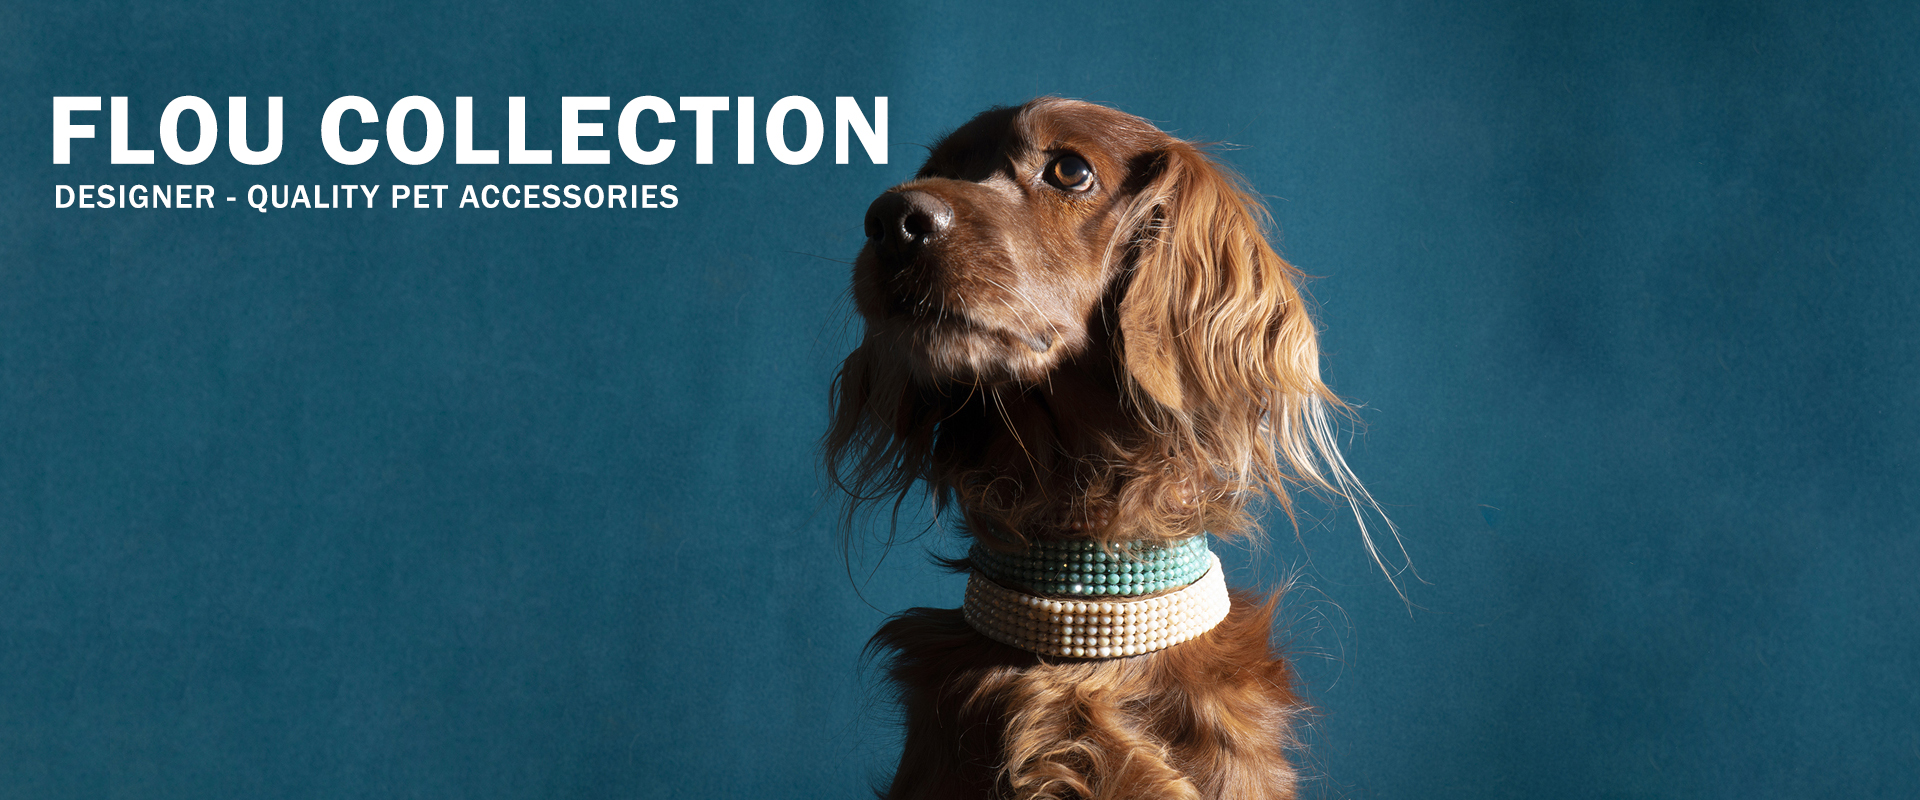 Flou Collection | Designer-quality pet accessories by zikos